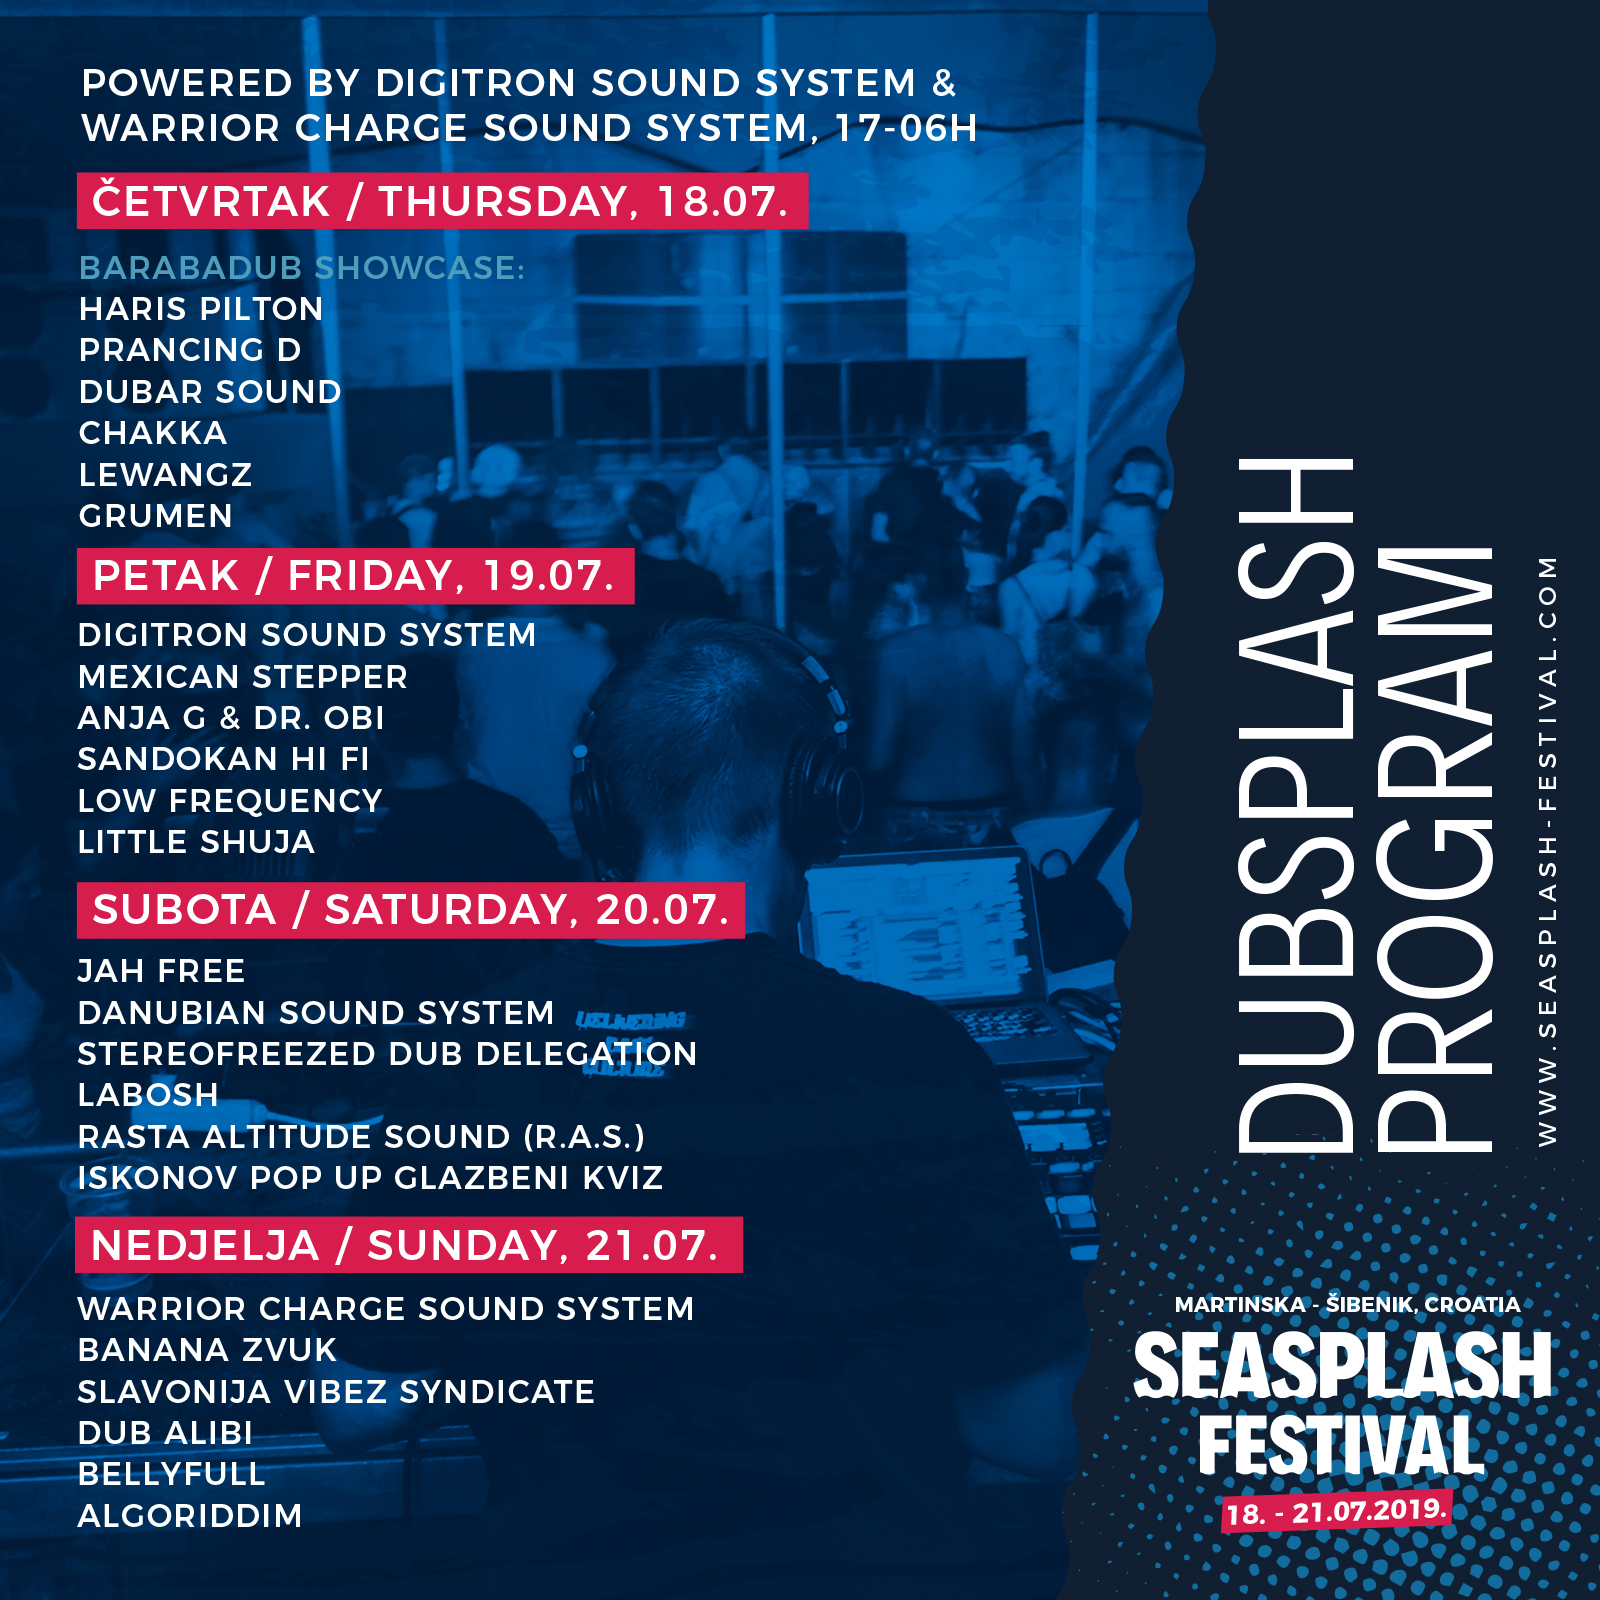 Novih 20 imena Seasplash festivala, raspored DubSplash i SoundSplash pozornica te ArtSplash